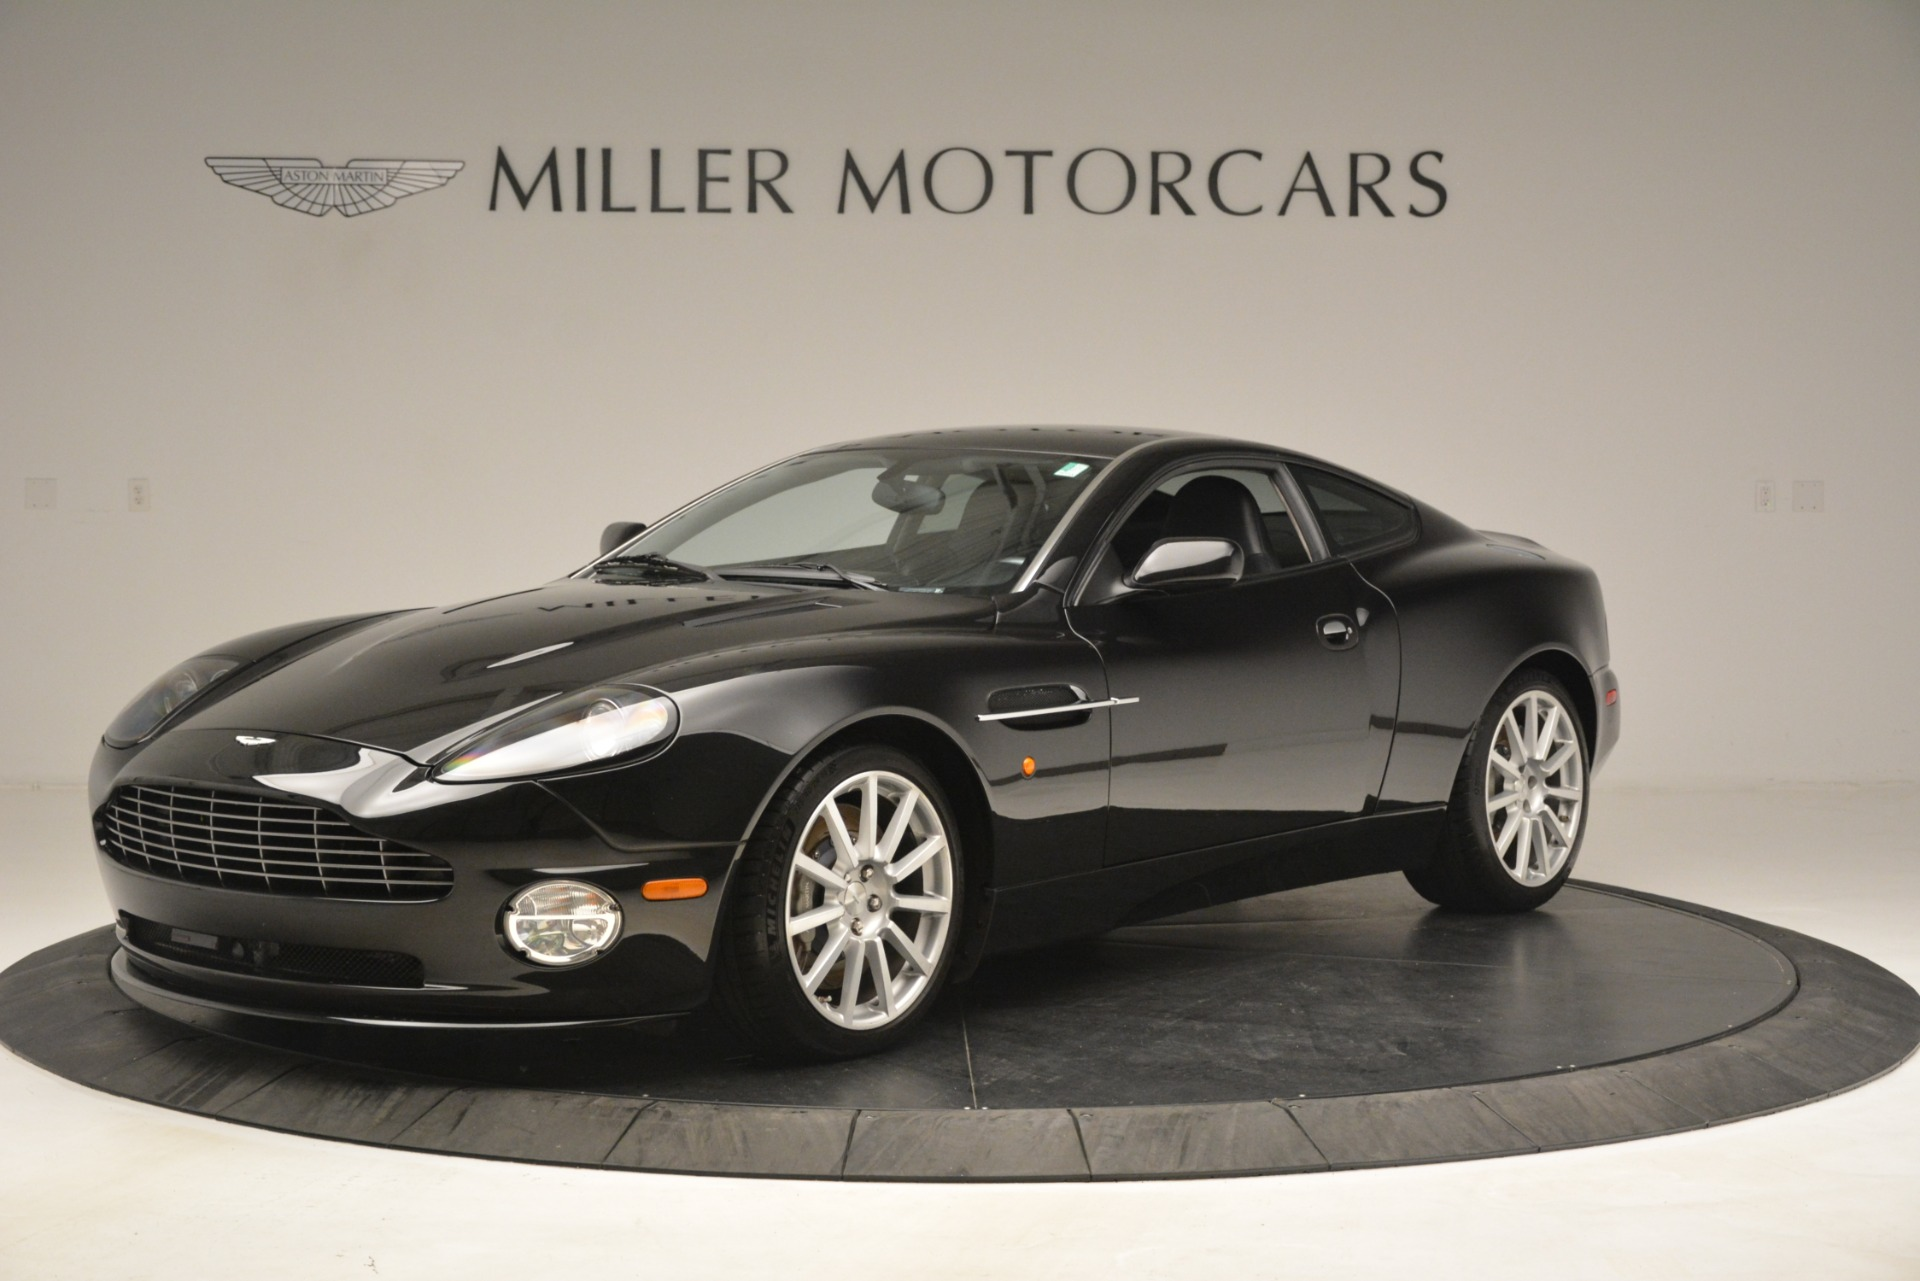 Used 2005 Aston Martin V12 Vanquish S Coupe for sale Sold at Alfa Romeo of Westport in Westport CT 06880 1